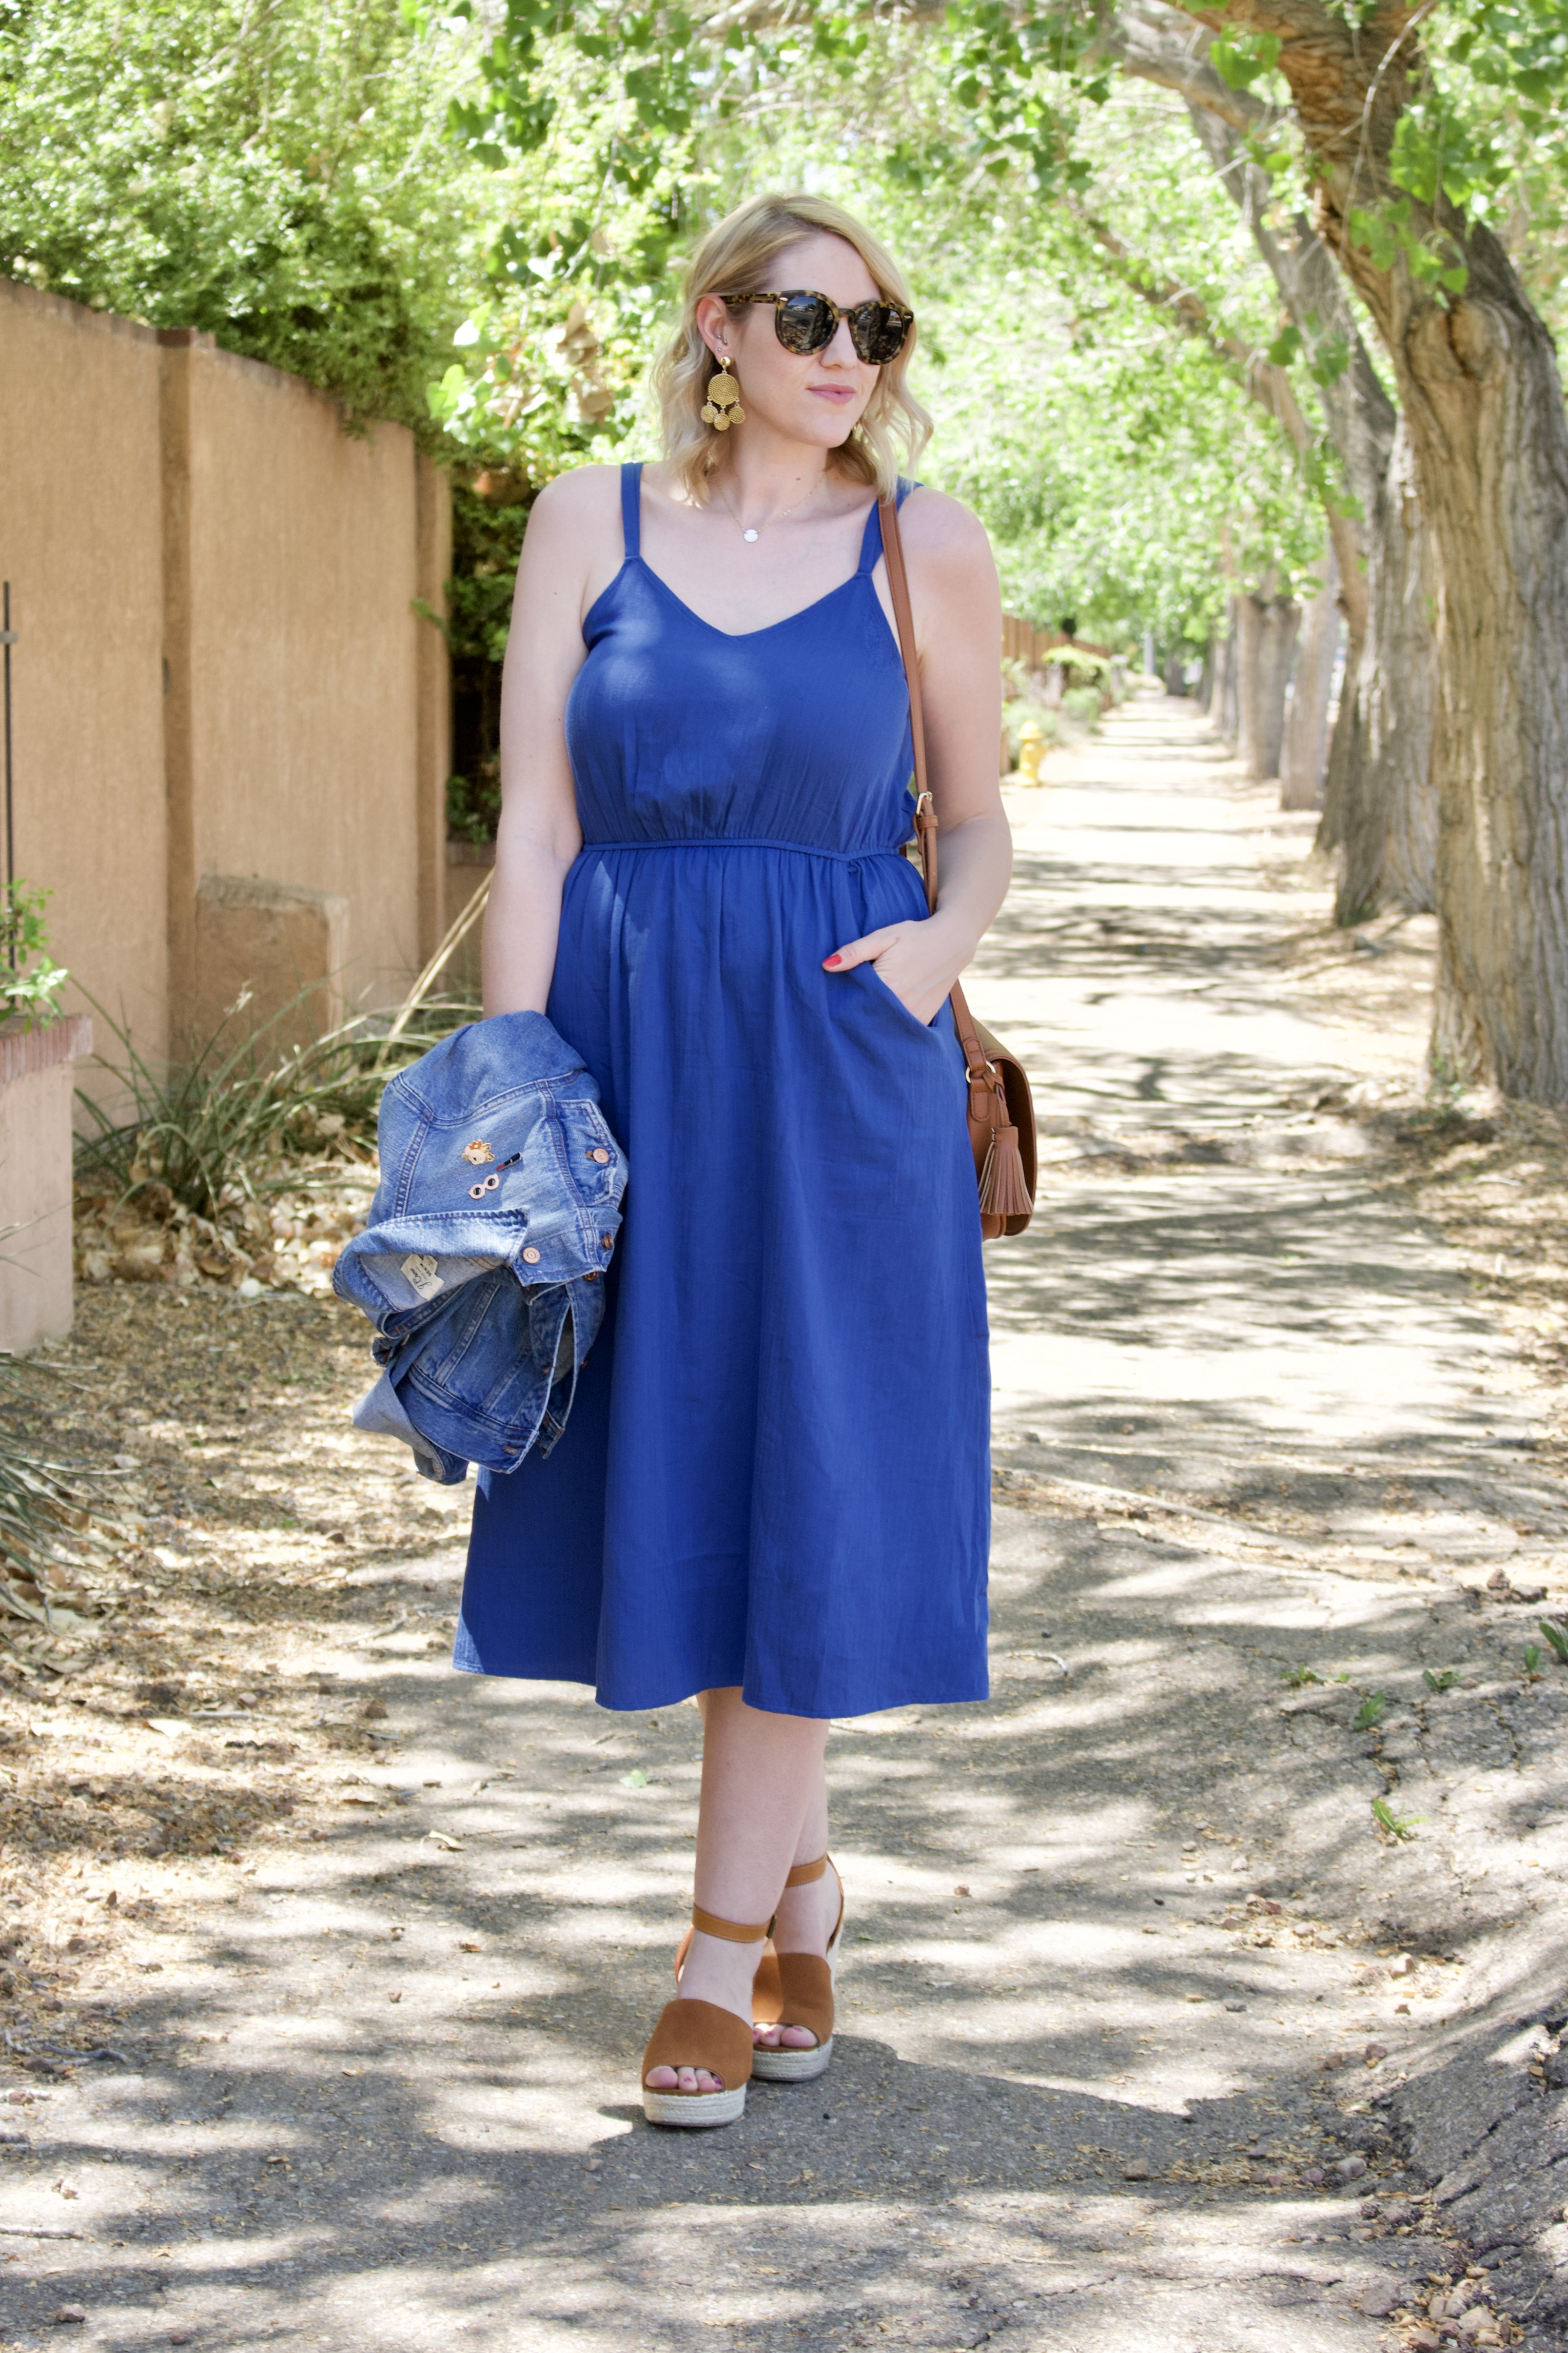 midi dress for mother's day #tallfashion #mididress #springstyle